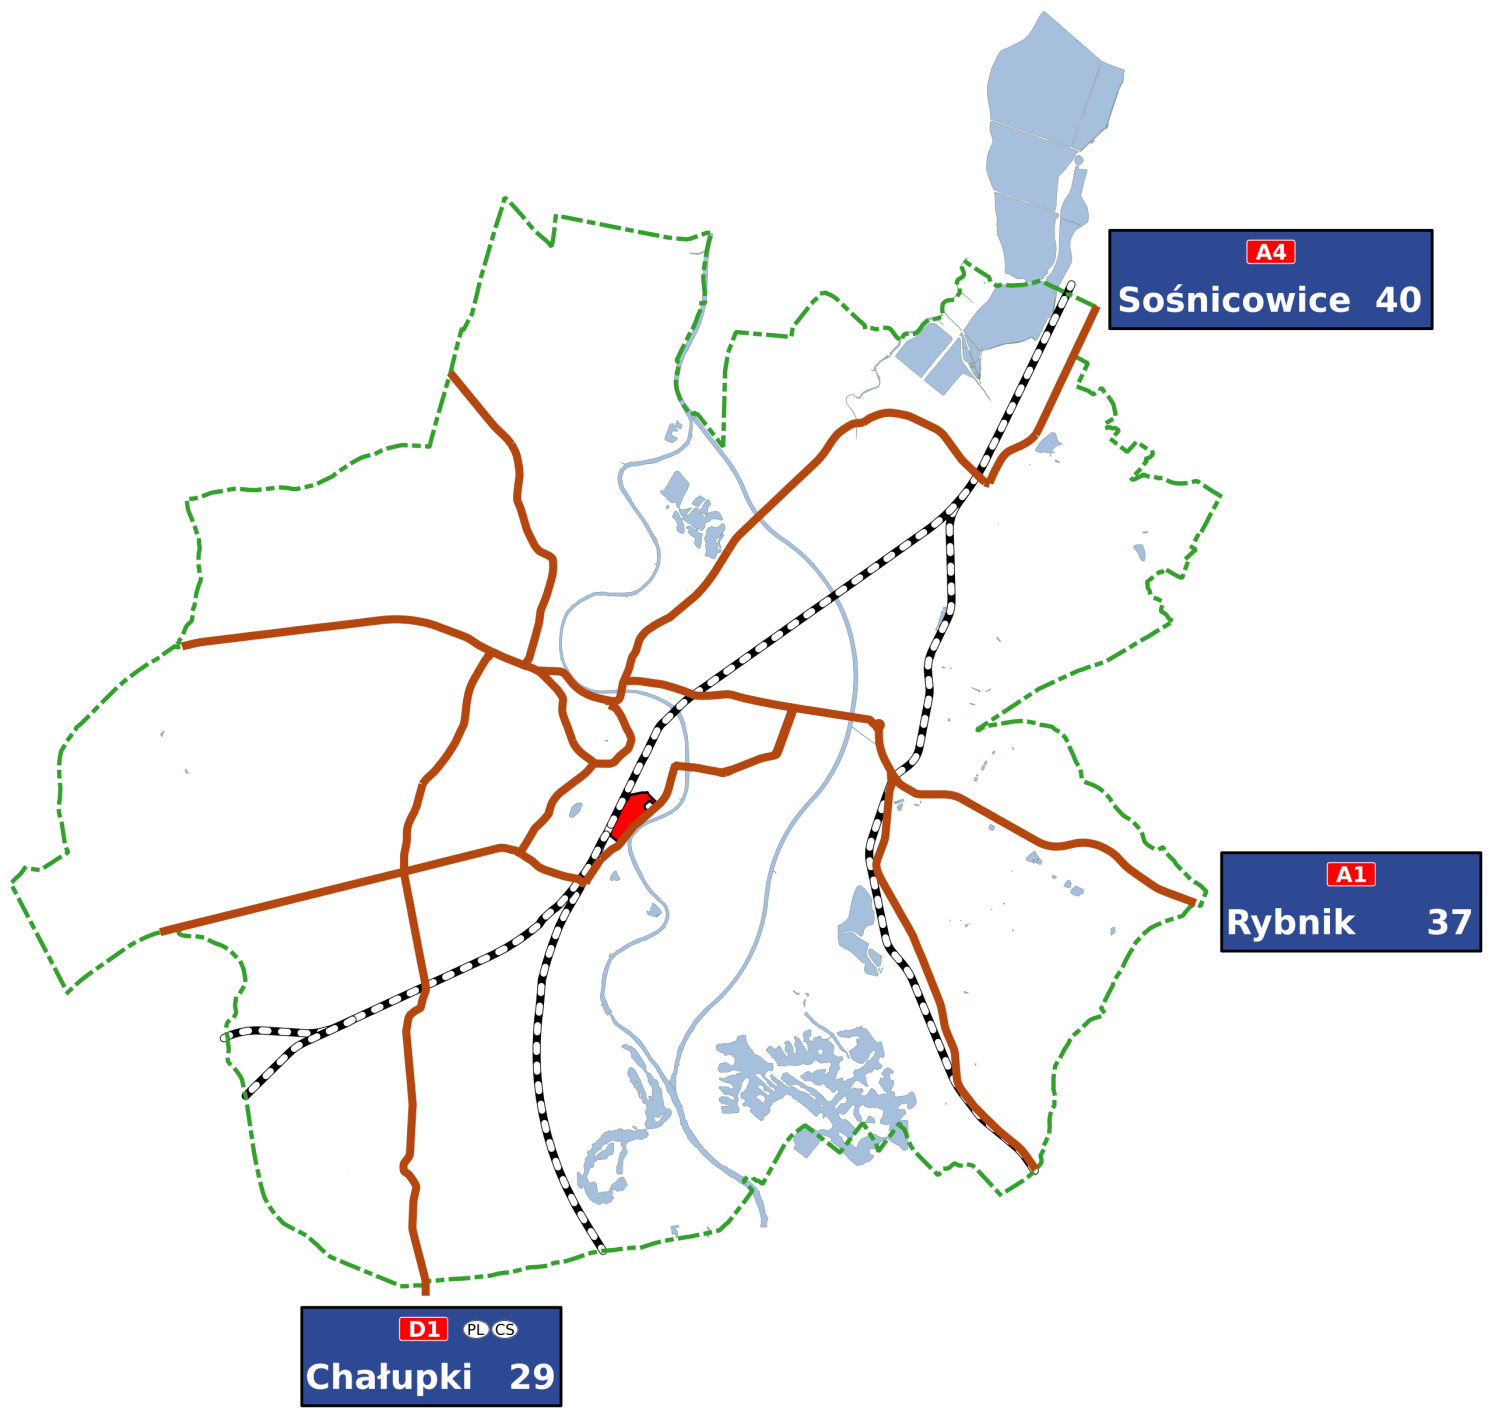 Map of road connections